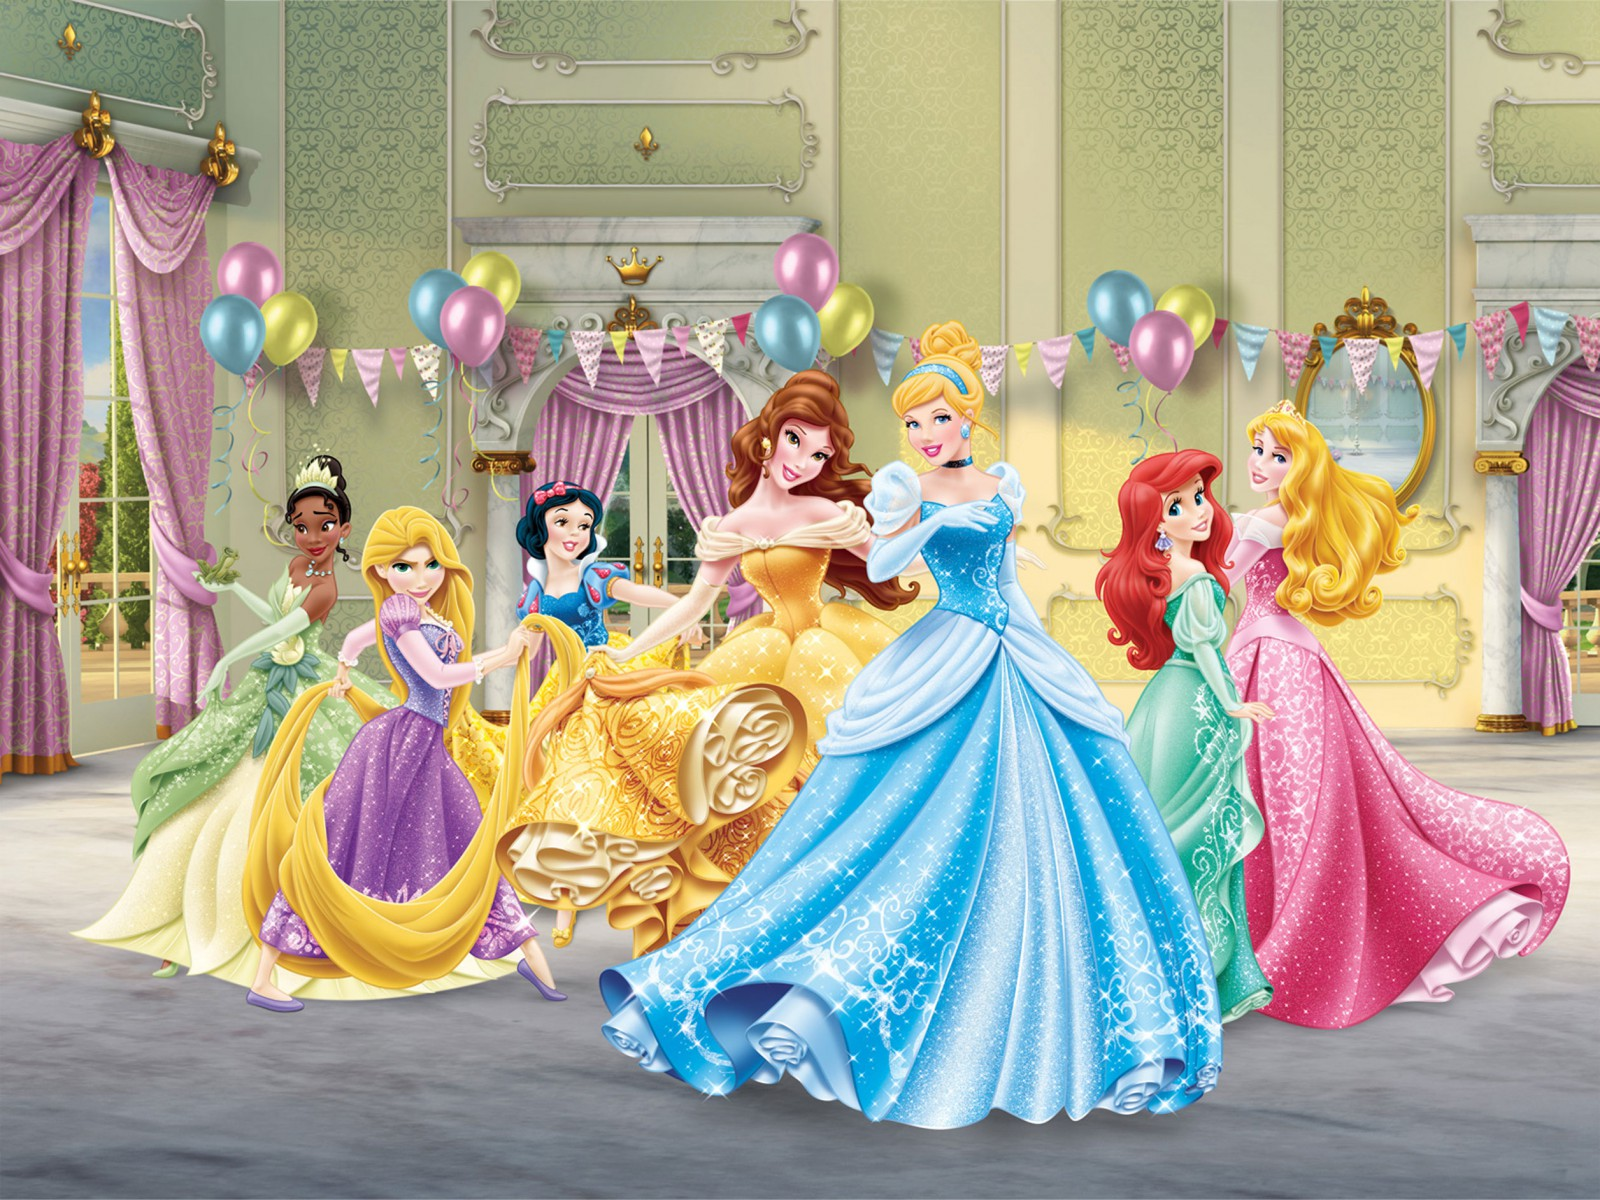 Xl photo wallpaper mural disney princess cindarella for Disney princess mural asda